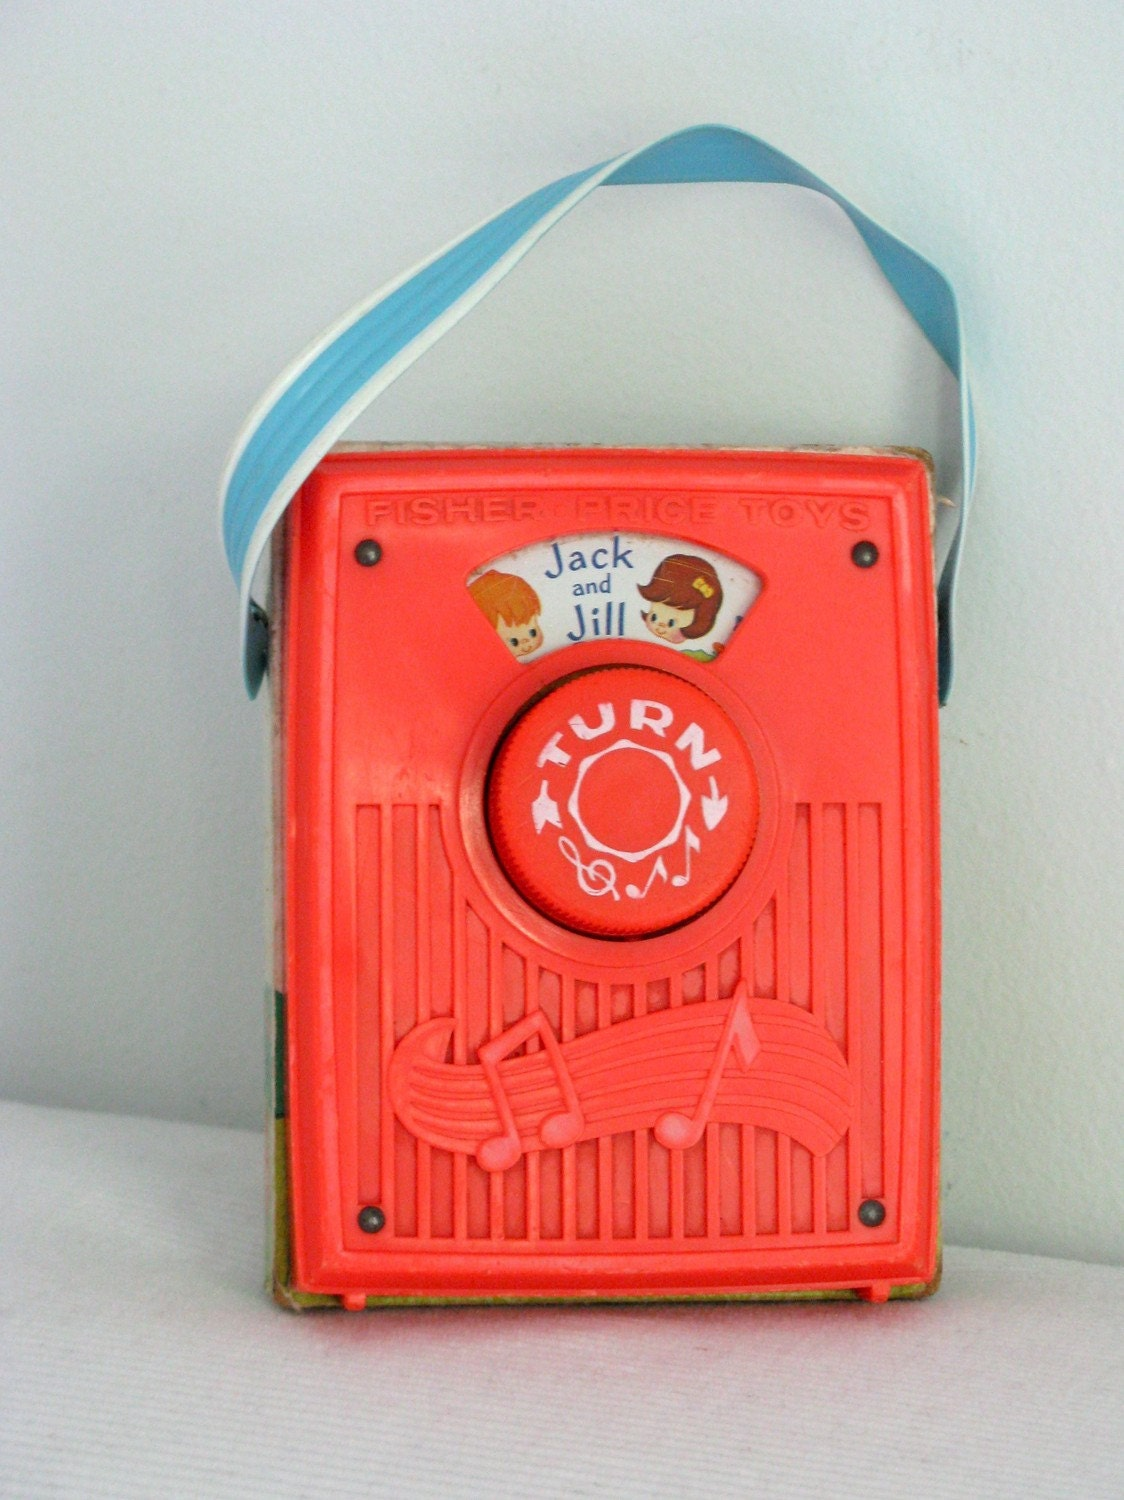 Vintage 70's Ficher Price Radio - Jack and Jill